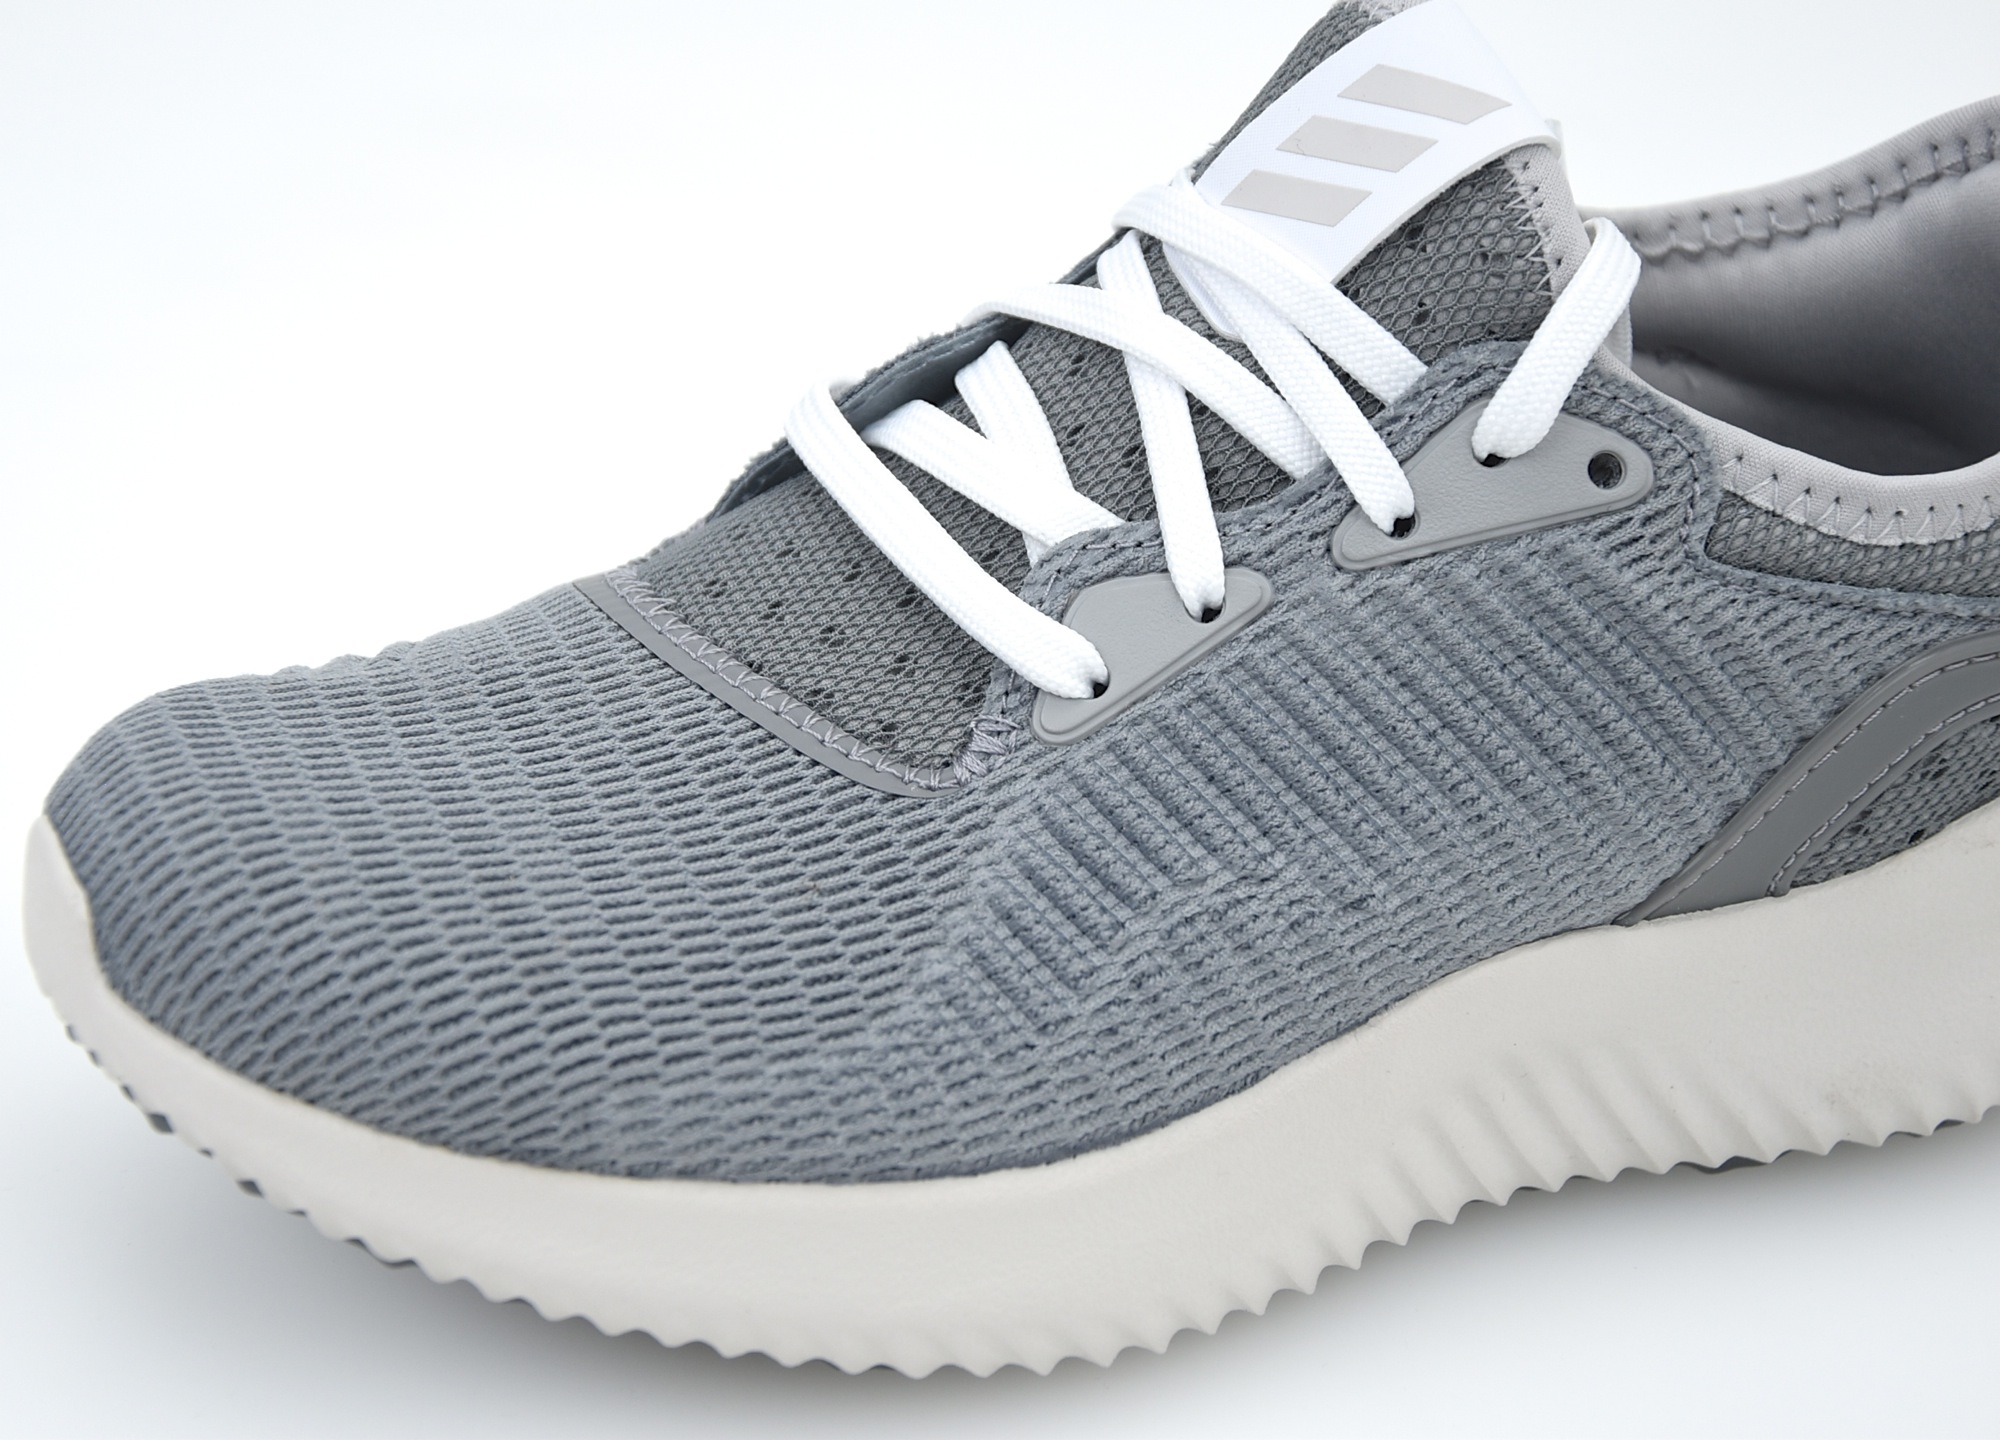 50b2131d8 ADIDAS WOMAN SPORTS RUNNING SNEAKER SHOES CODE BW1216 - BW1217 ALPHABOUNCE  LUX W